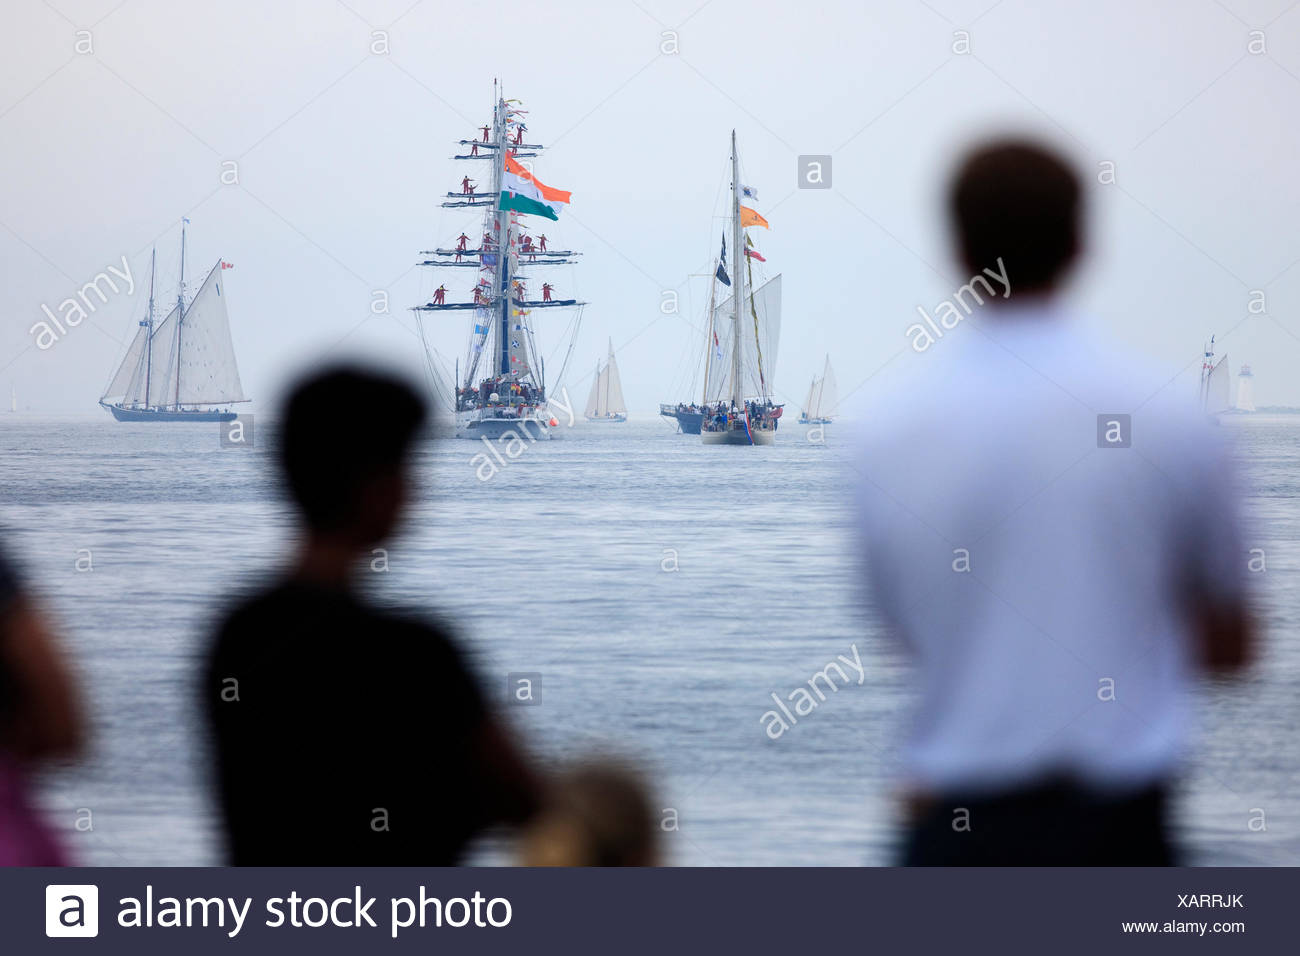 Sailing ships head to sea as people watch the Parade of Sail conclusion of the 2007 Tall Ships festival in Halifax, Nova Scotia. - Stock Image